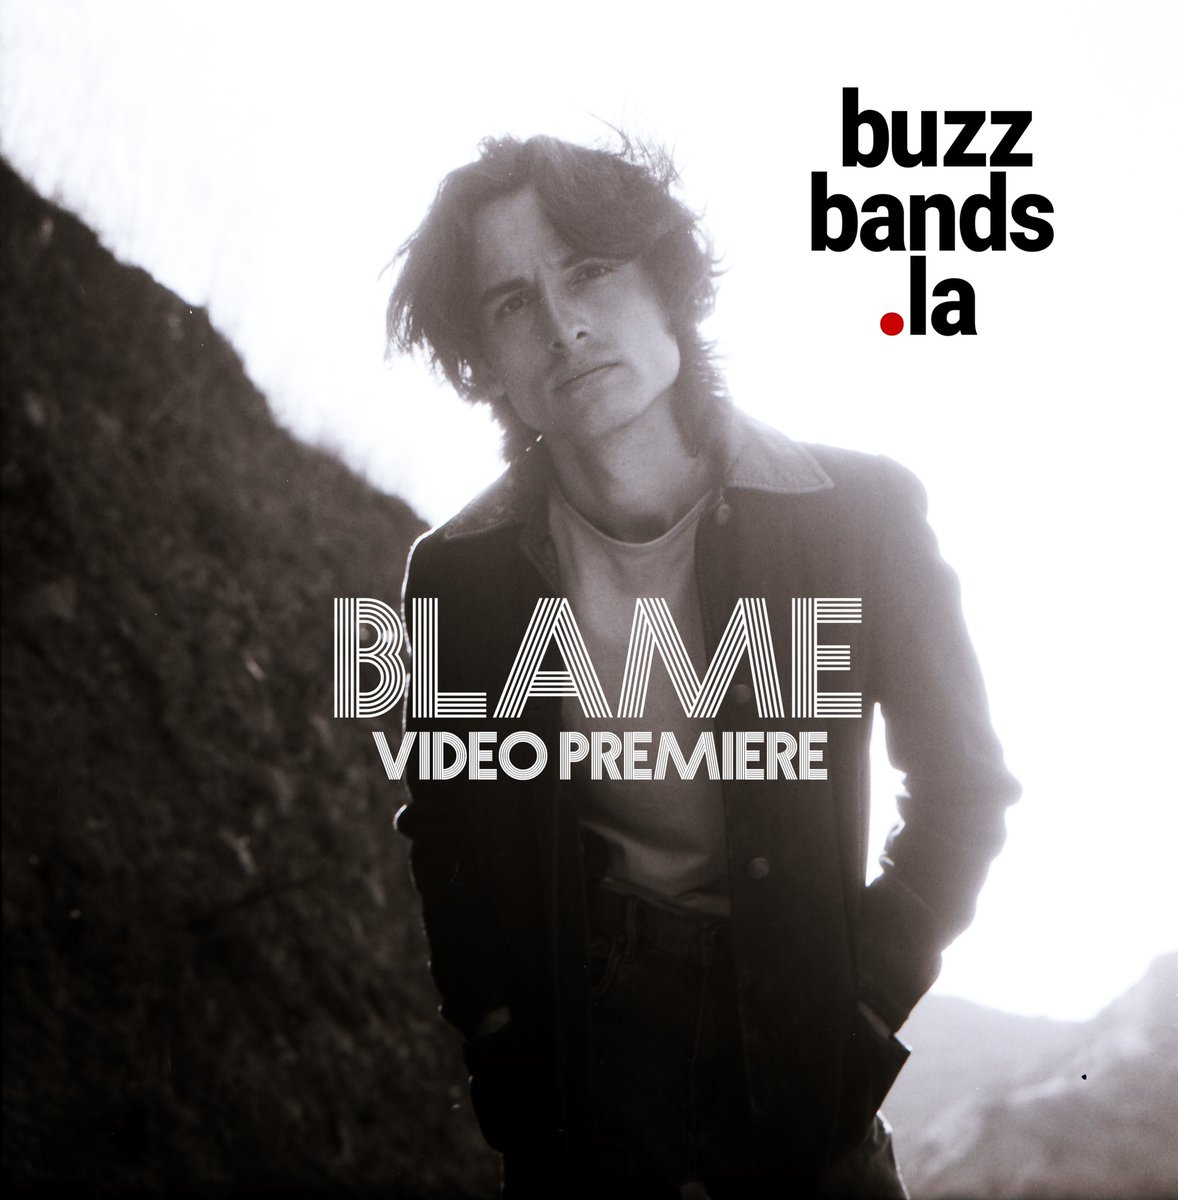 """SURPRISE! Exclusive """"Blame"""" music video premiere tomorrow over at @buzzbandsla. Tune in before the official song release this Friday. Photo by Logan Floyd. . . . . . #buzzbandsla #losangelesartists #losangelesmusicscene #blame #blameitonme #lamusician #lamusicians #laporé https://t.co/vsNtIKIGxO"""